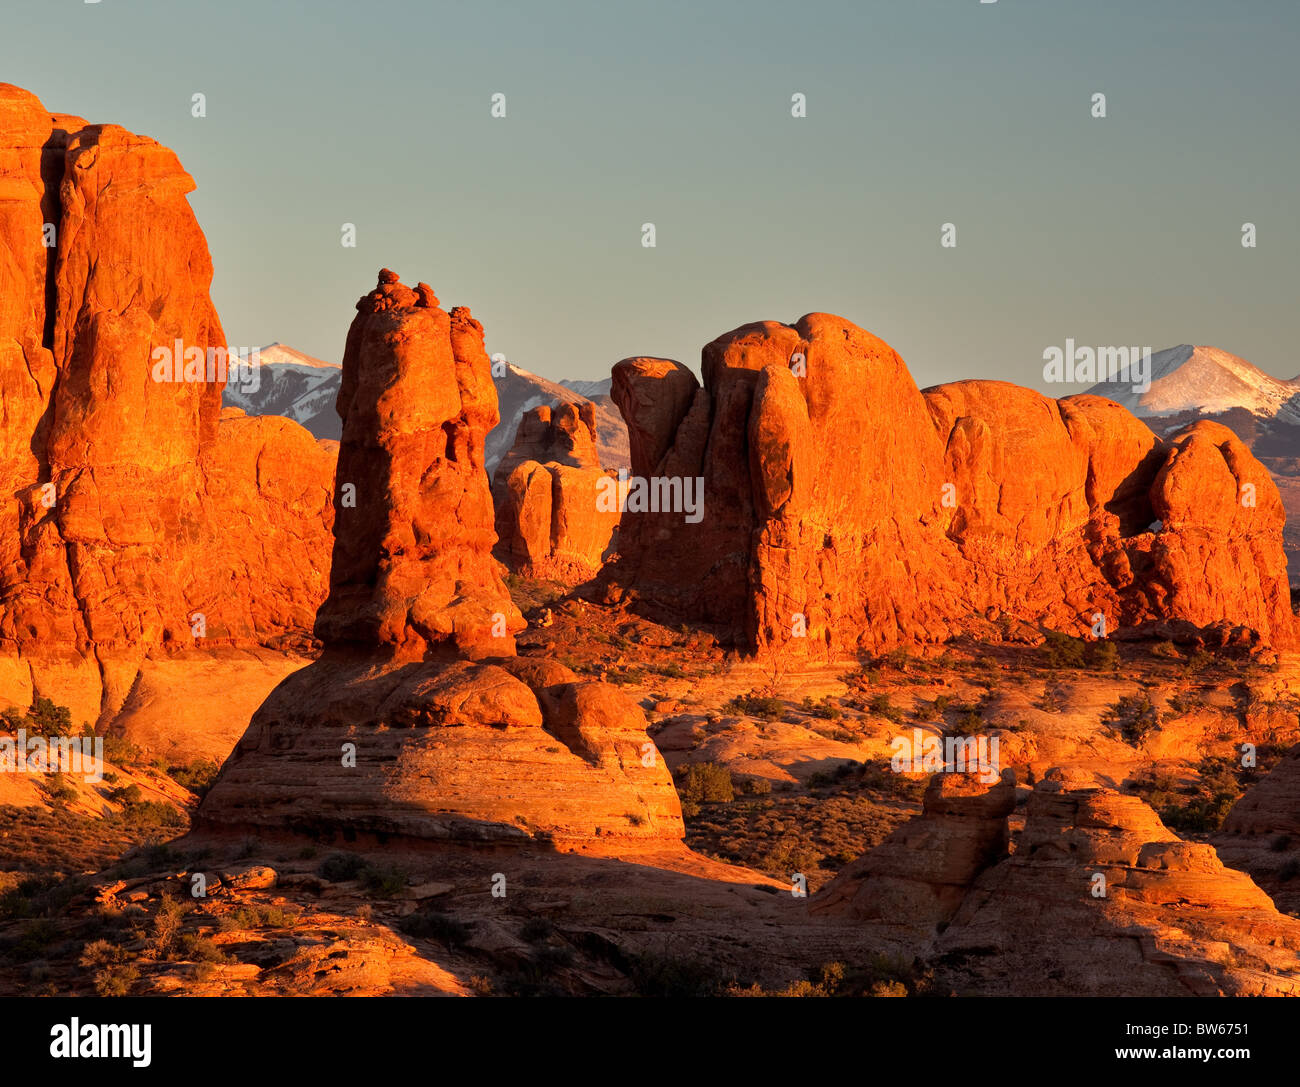 looking into the Windows Section from the Garden of Eden, Arches National Park, Utah - Stock Image